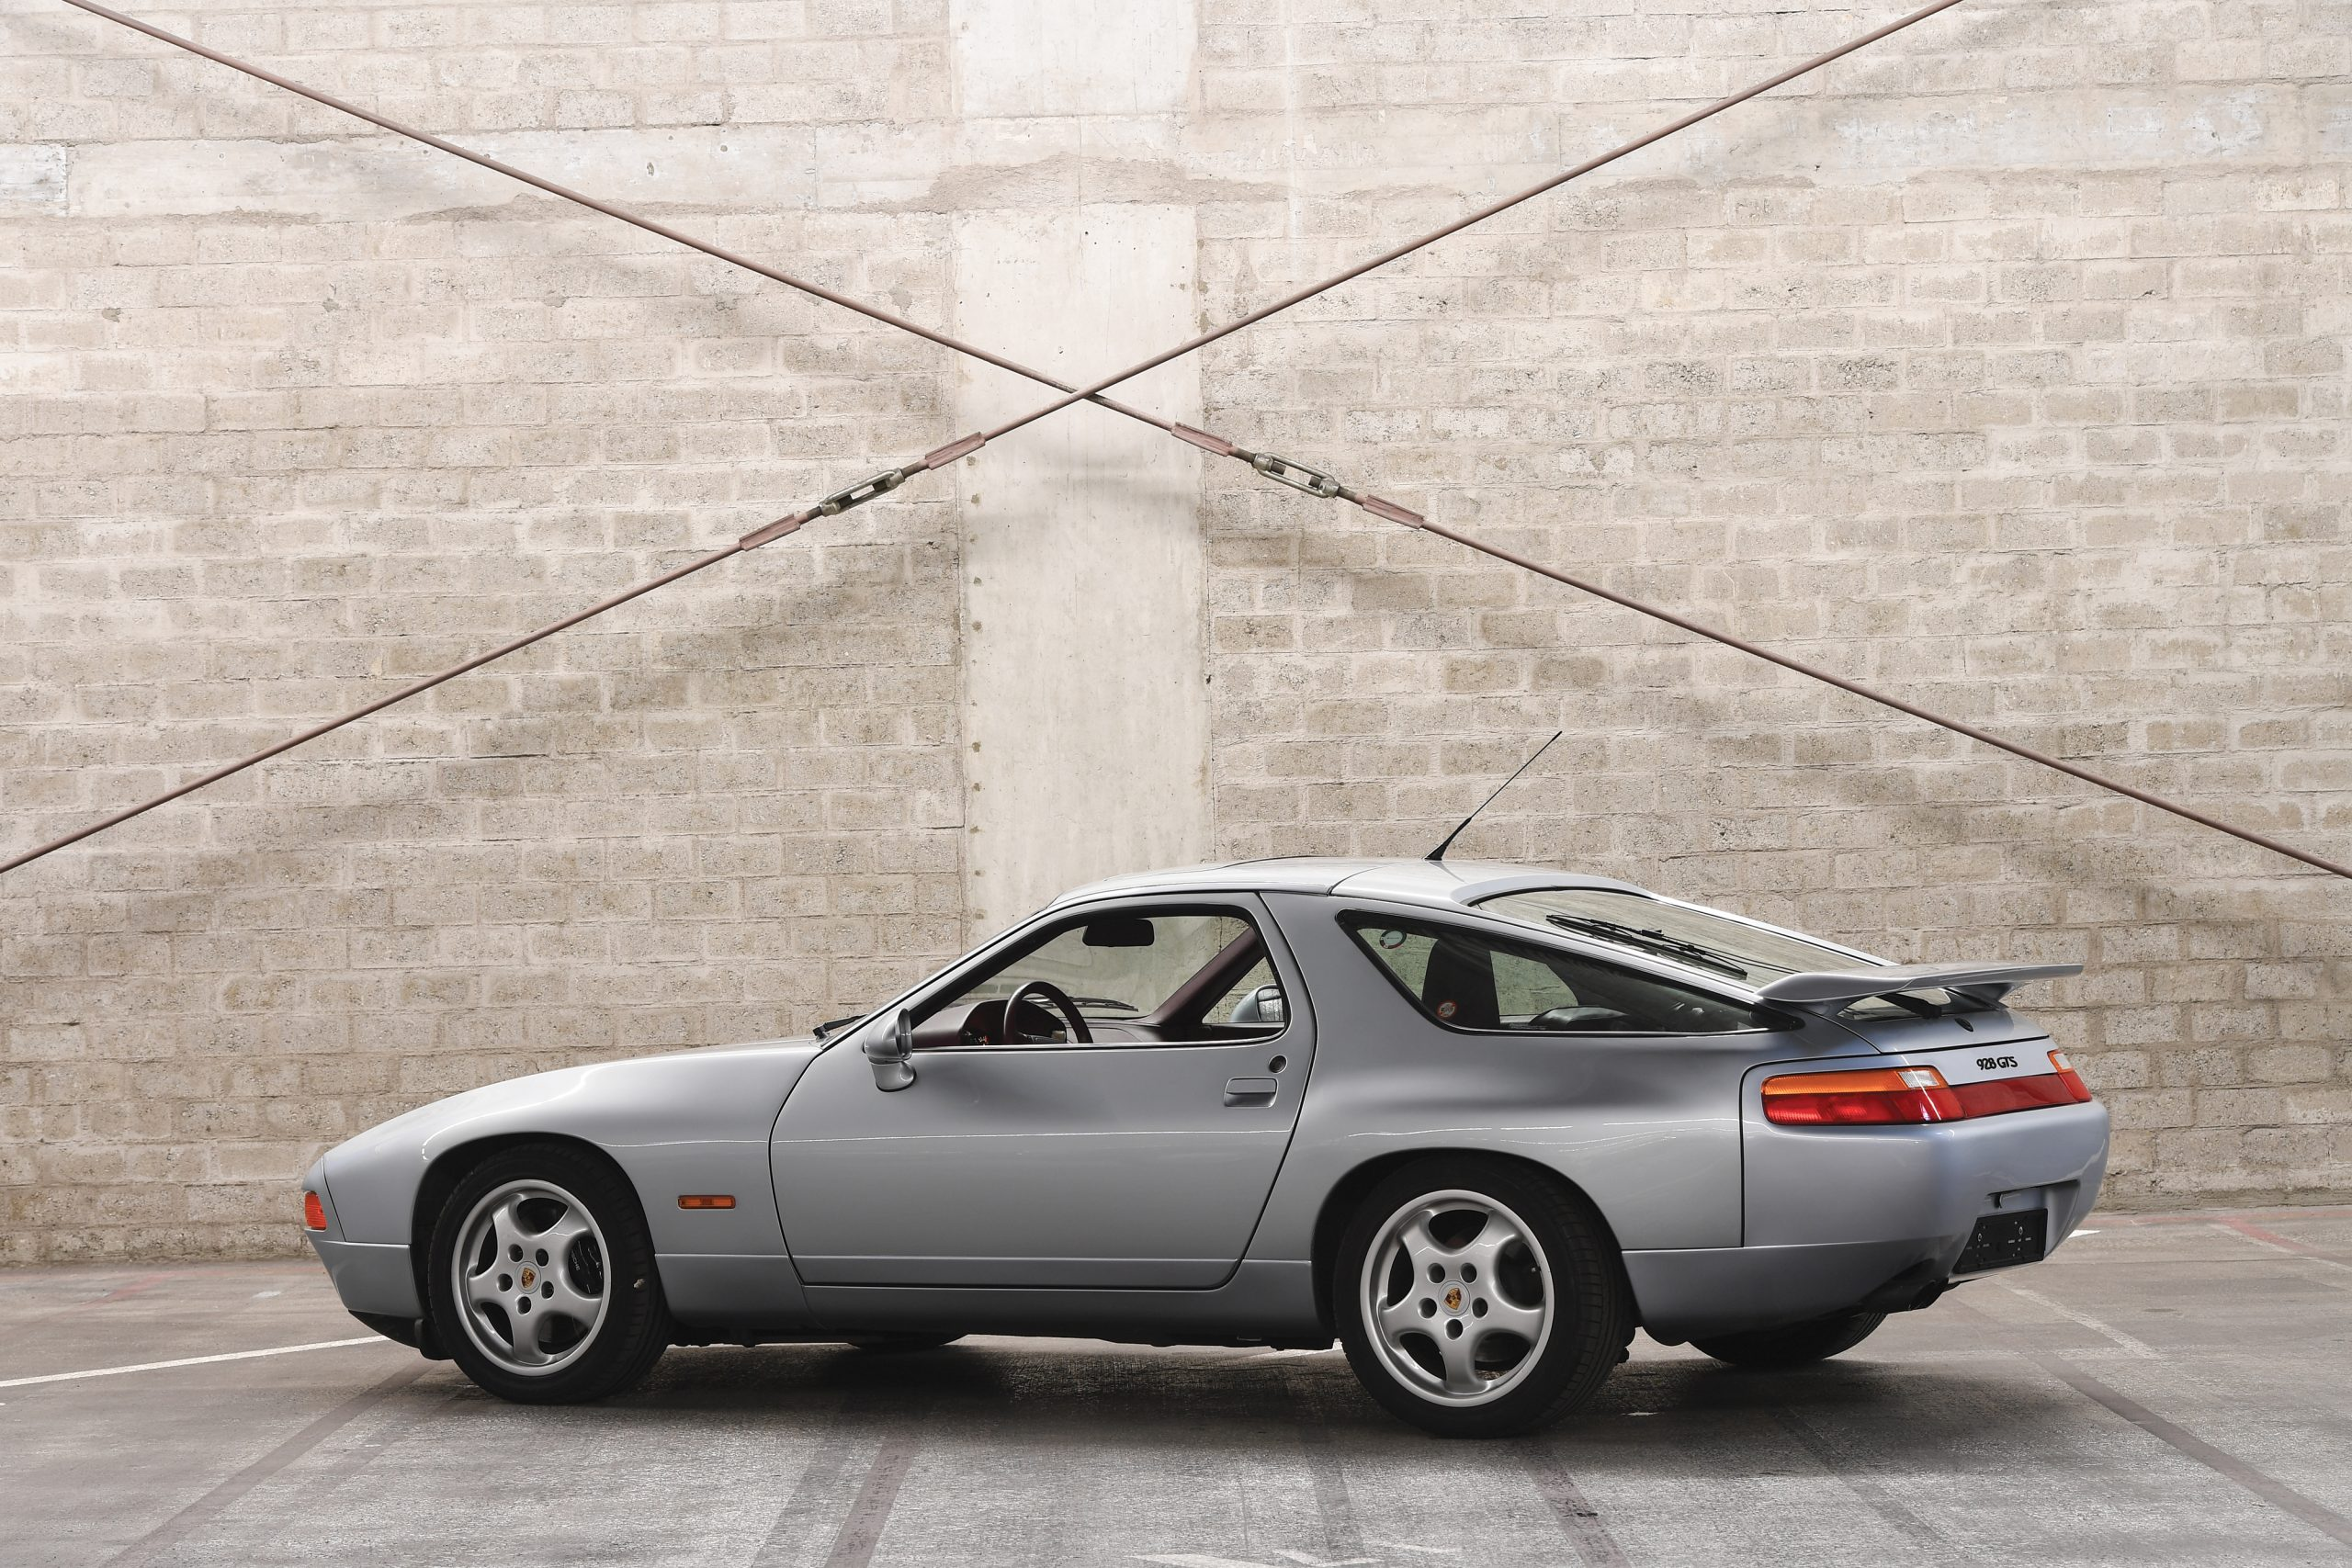 1992 Porsche 928 GTS Rear Three-Quarter